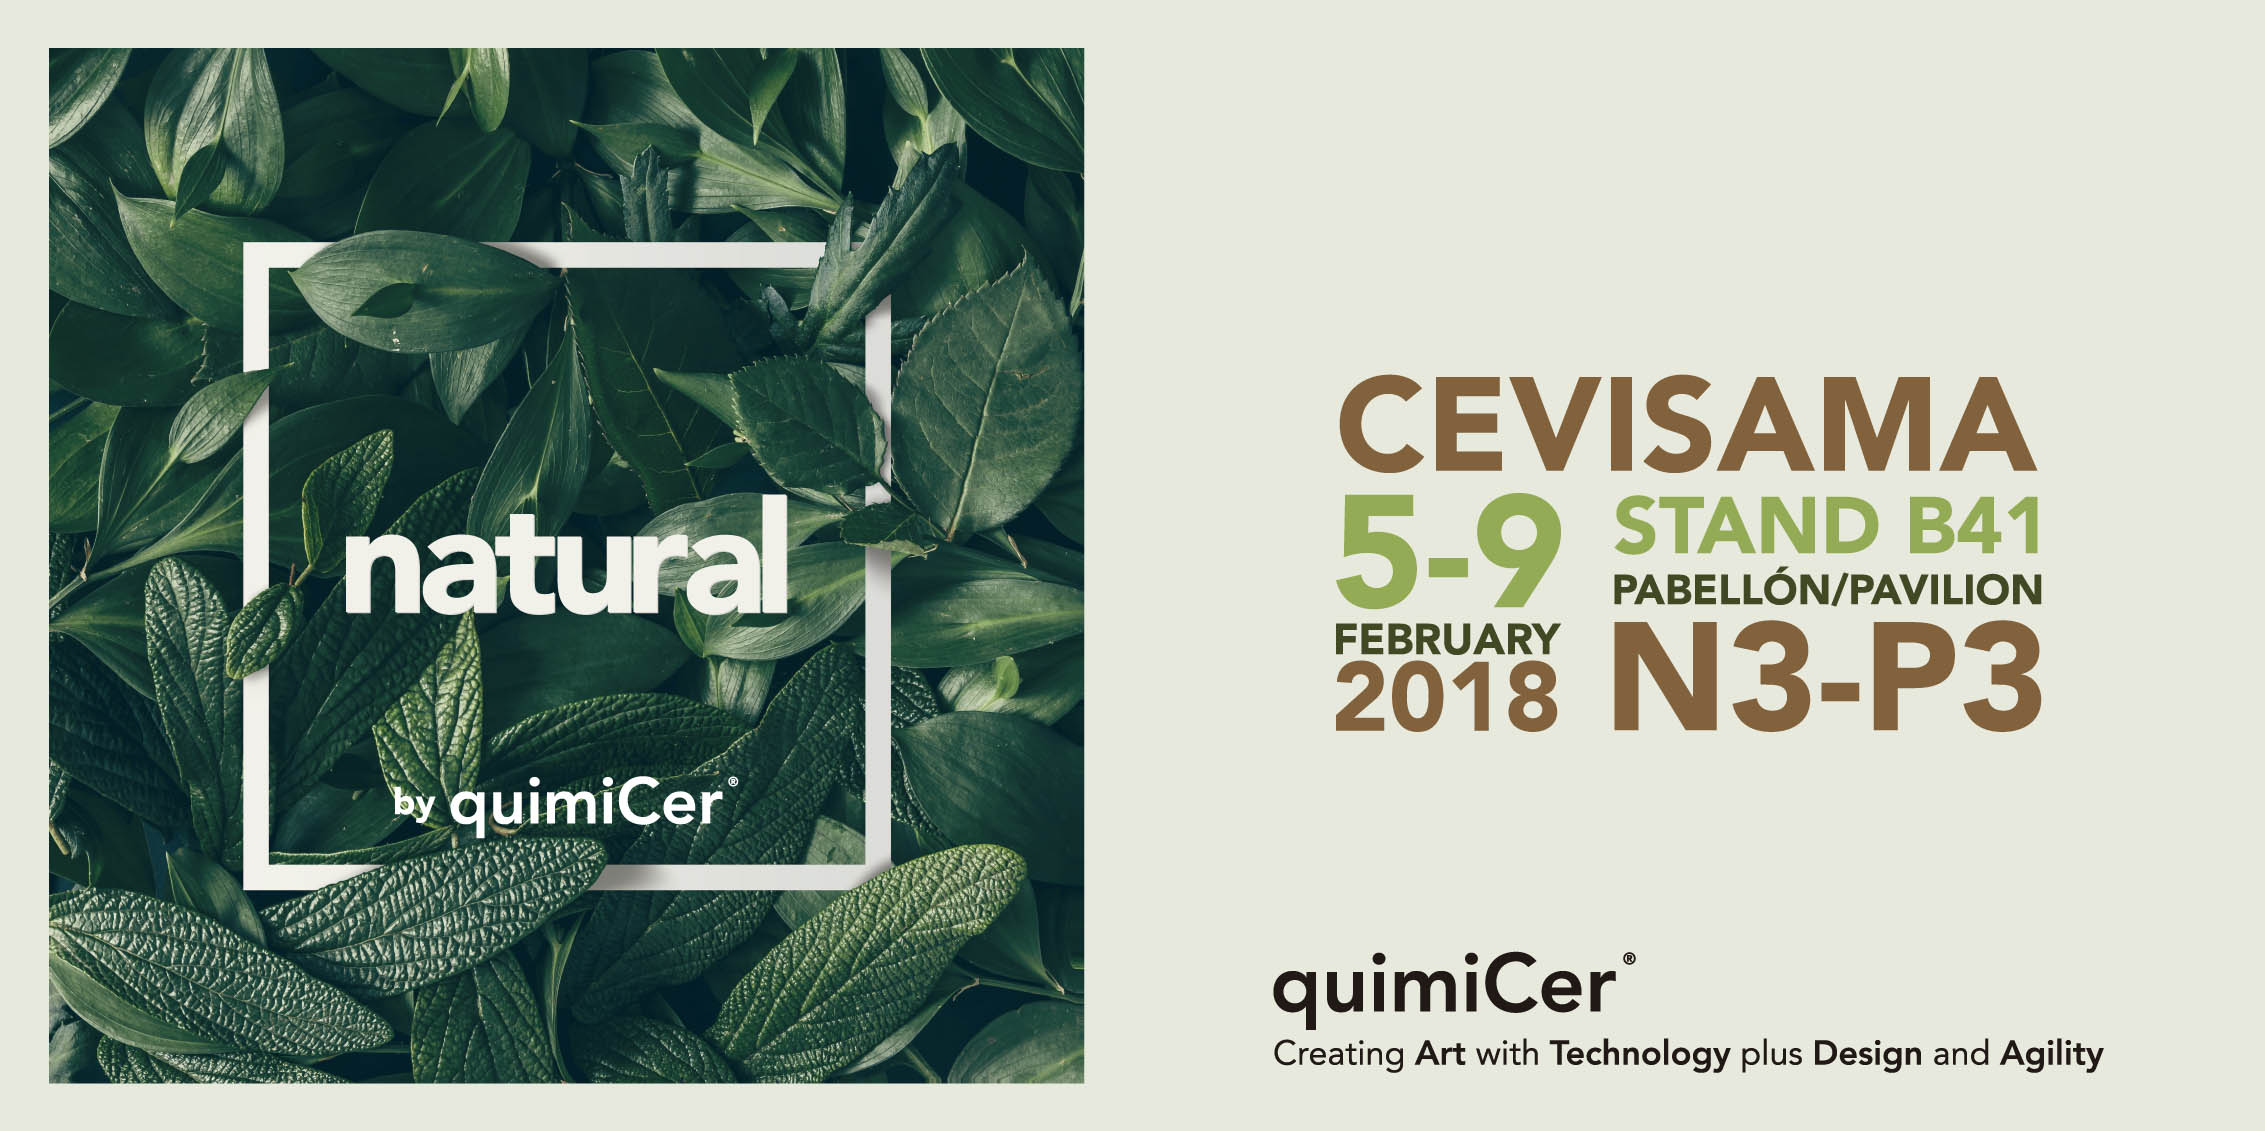 Actualidad quimicer for Cevisama 2018